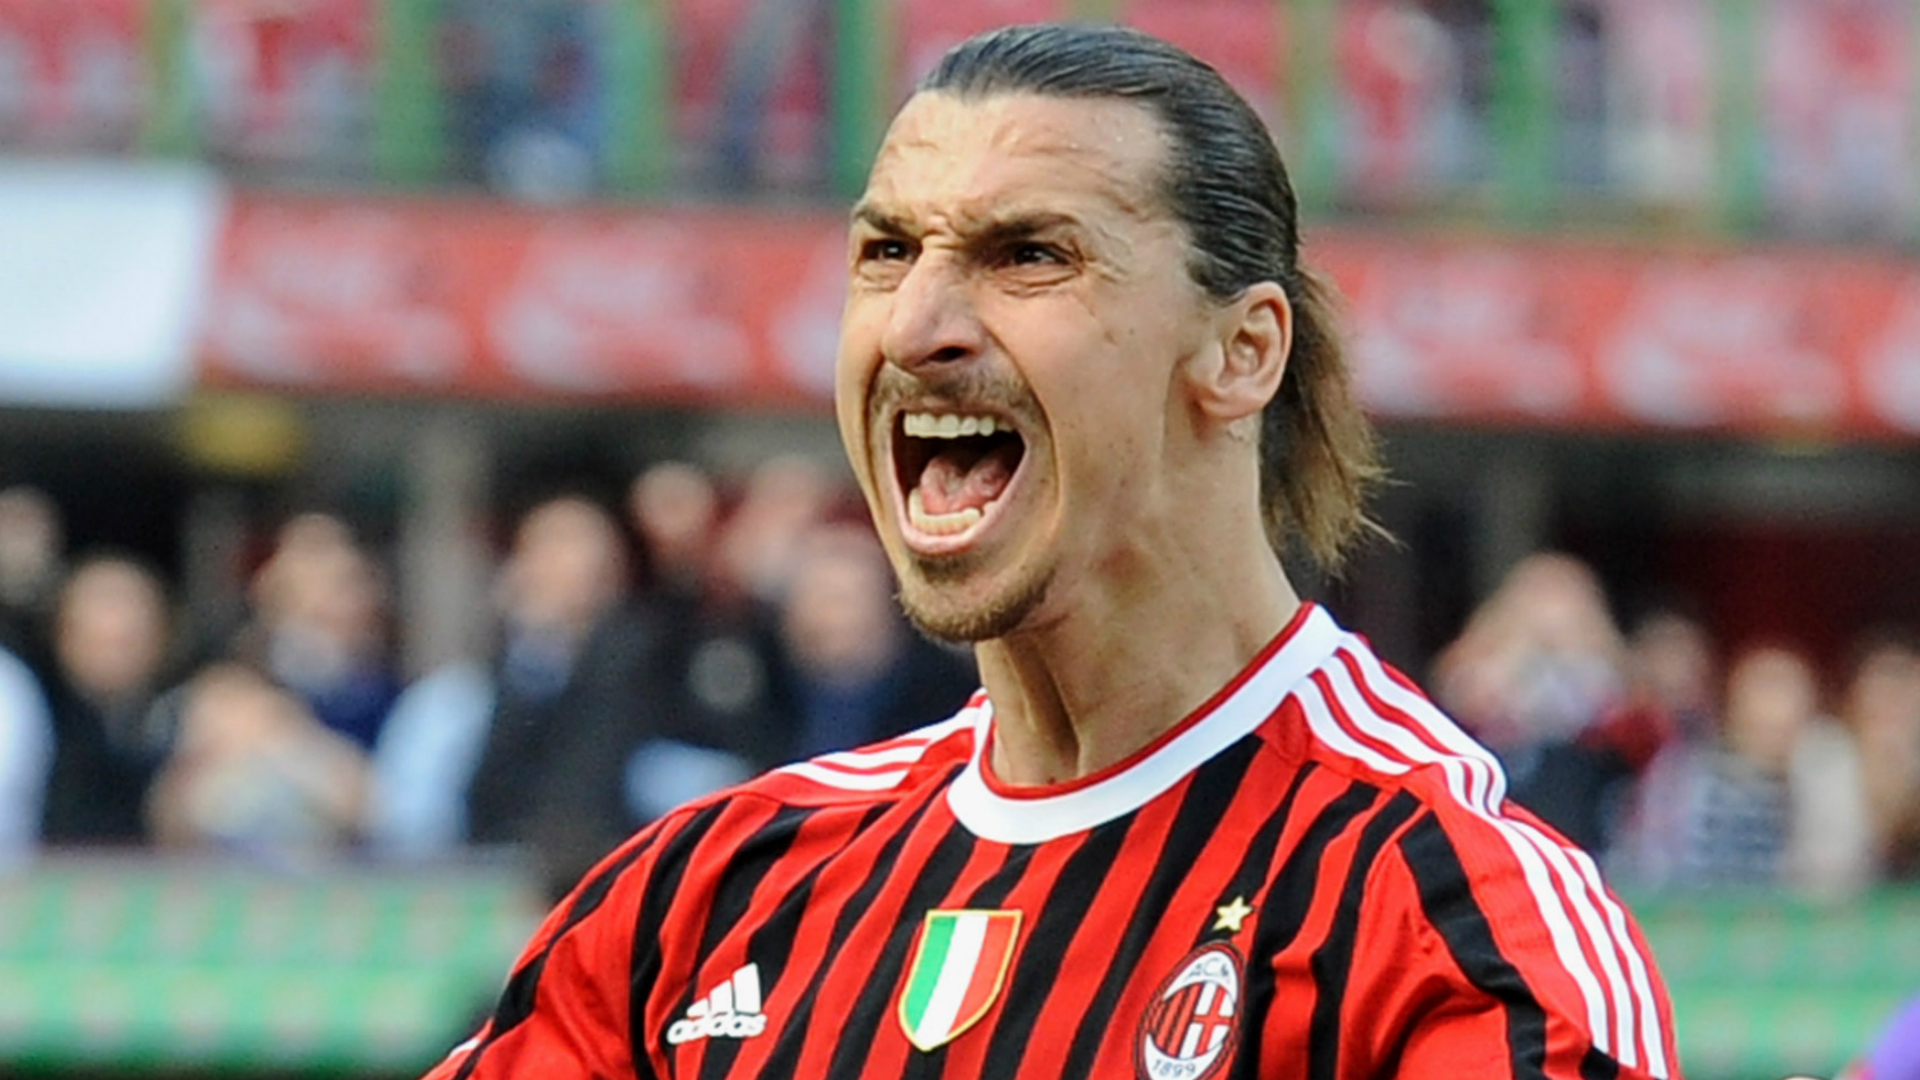 Zlatan Ibrahimovic: I didn't come to Milan as a mascot to dance on the sidelines